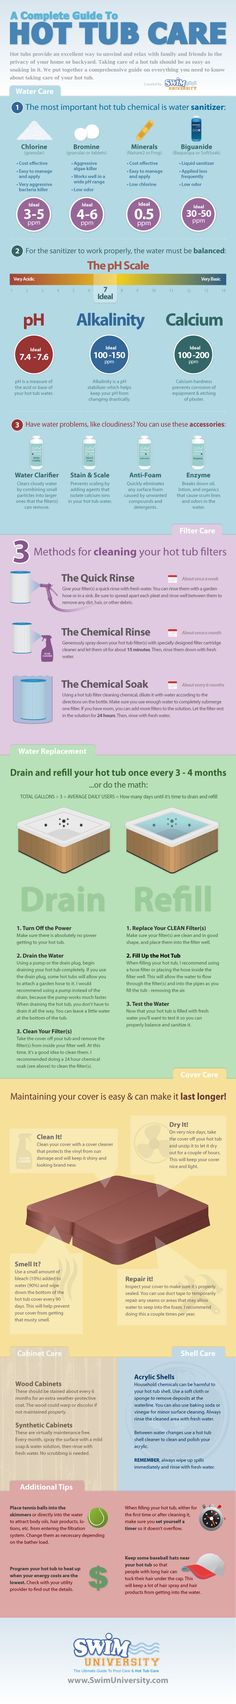 Hot Tub & Spa Care Info-graphic. how to take care of your hot tub spa.    Here is the link:  http://www.swimuniversity.com/blog/a-complete-guide-to-hot-tub-care-infographic#